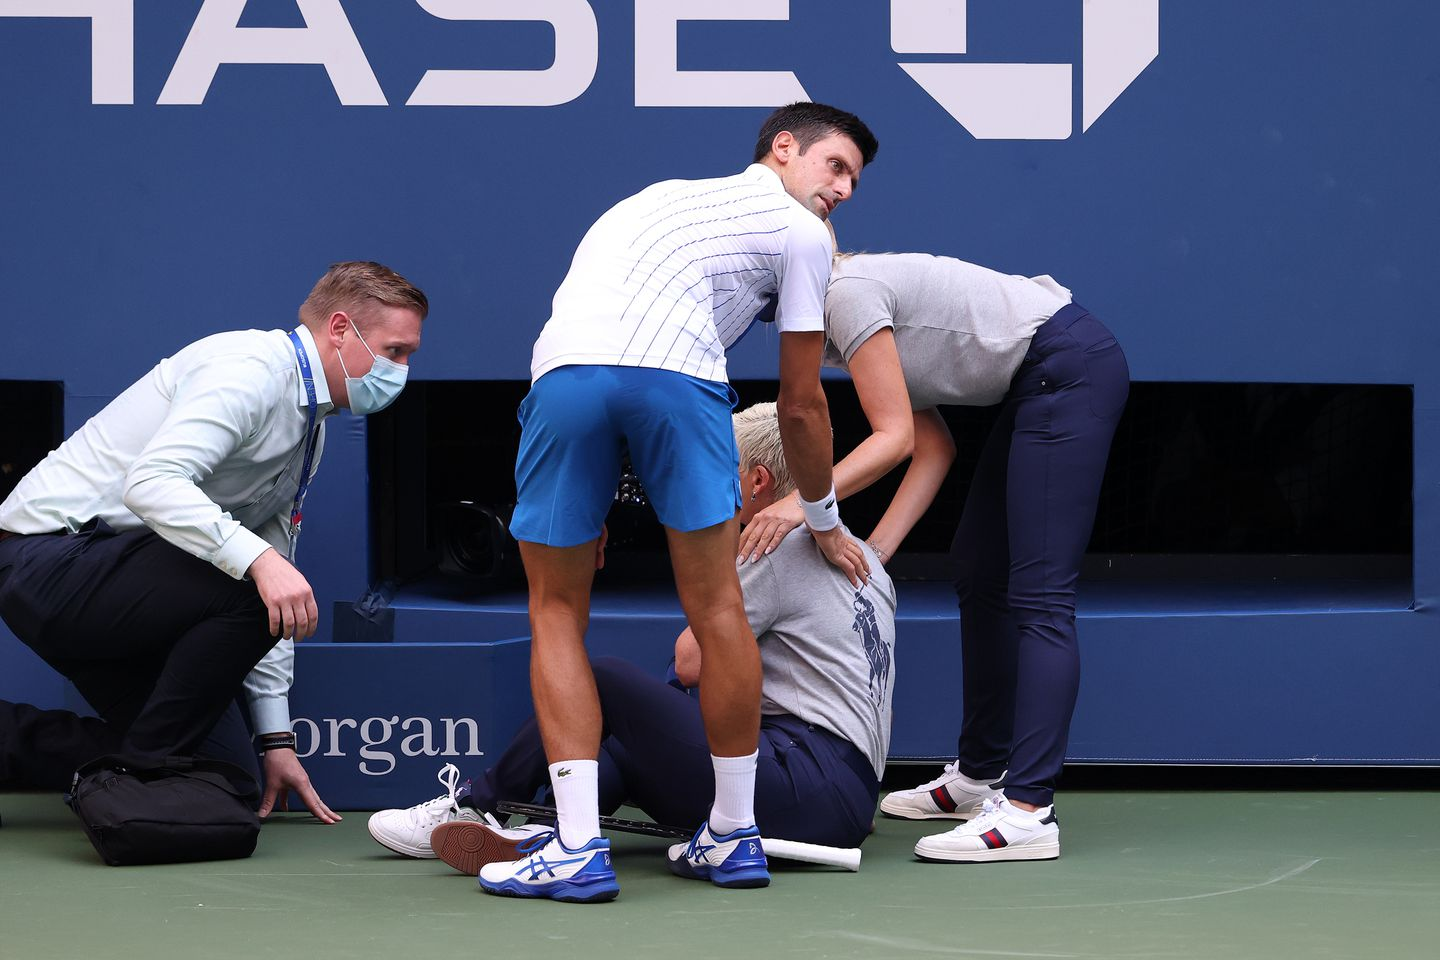 Top Seeded Novak Djokovic Out Of Us Open After Hitting Line Judge With Tennis Ball The Boston Globe